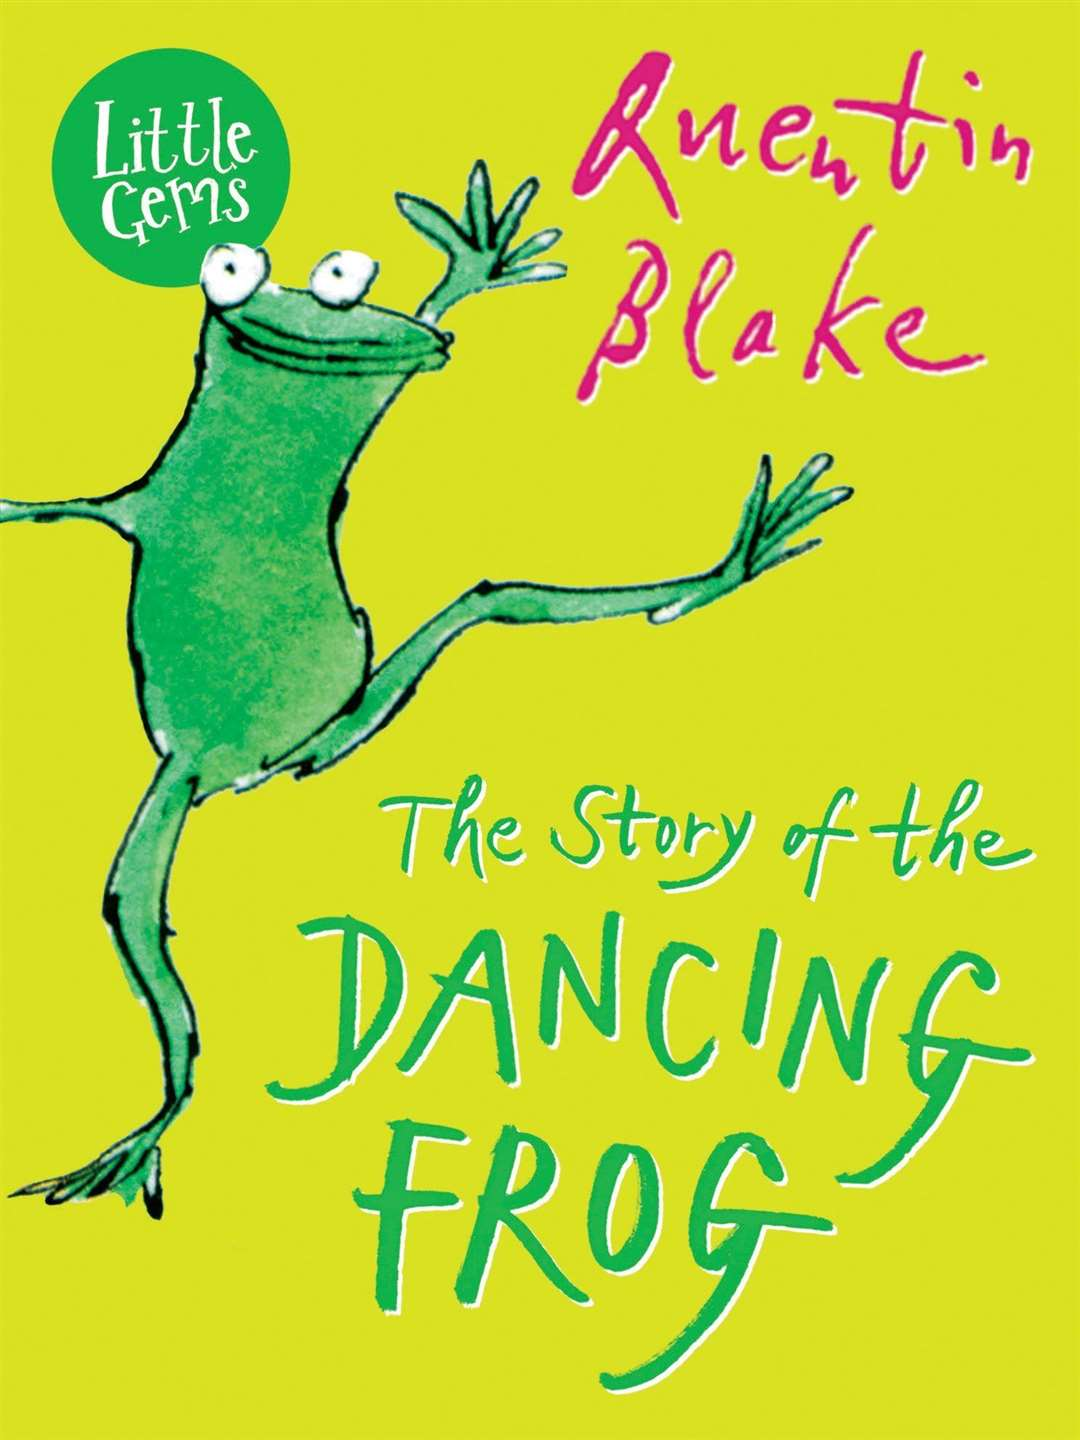 The Story of the Dancing Frog by Quentin Blake (42617227)